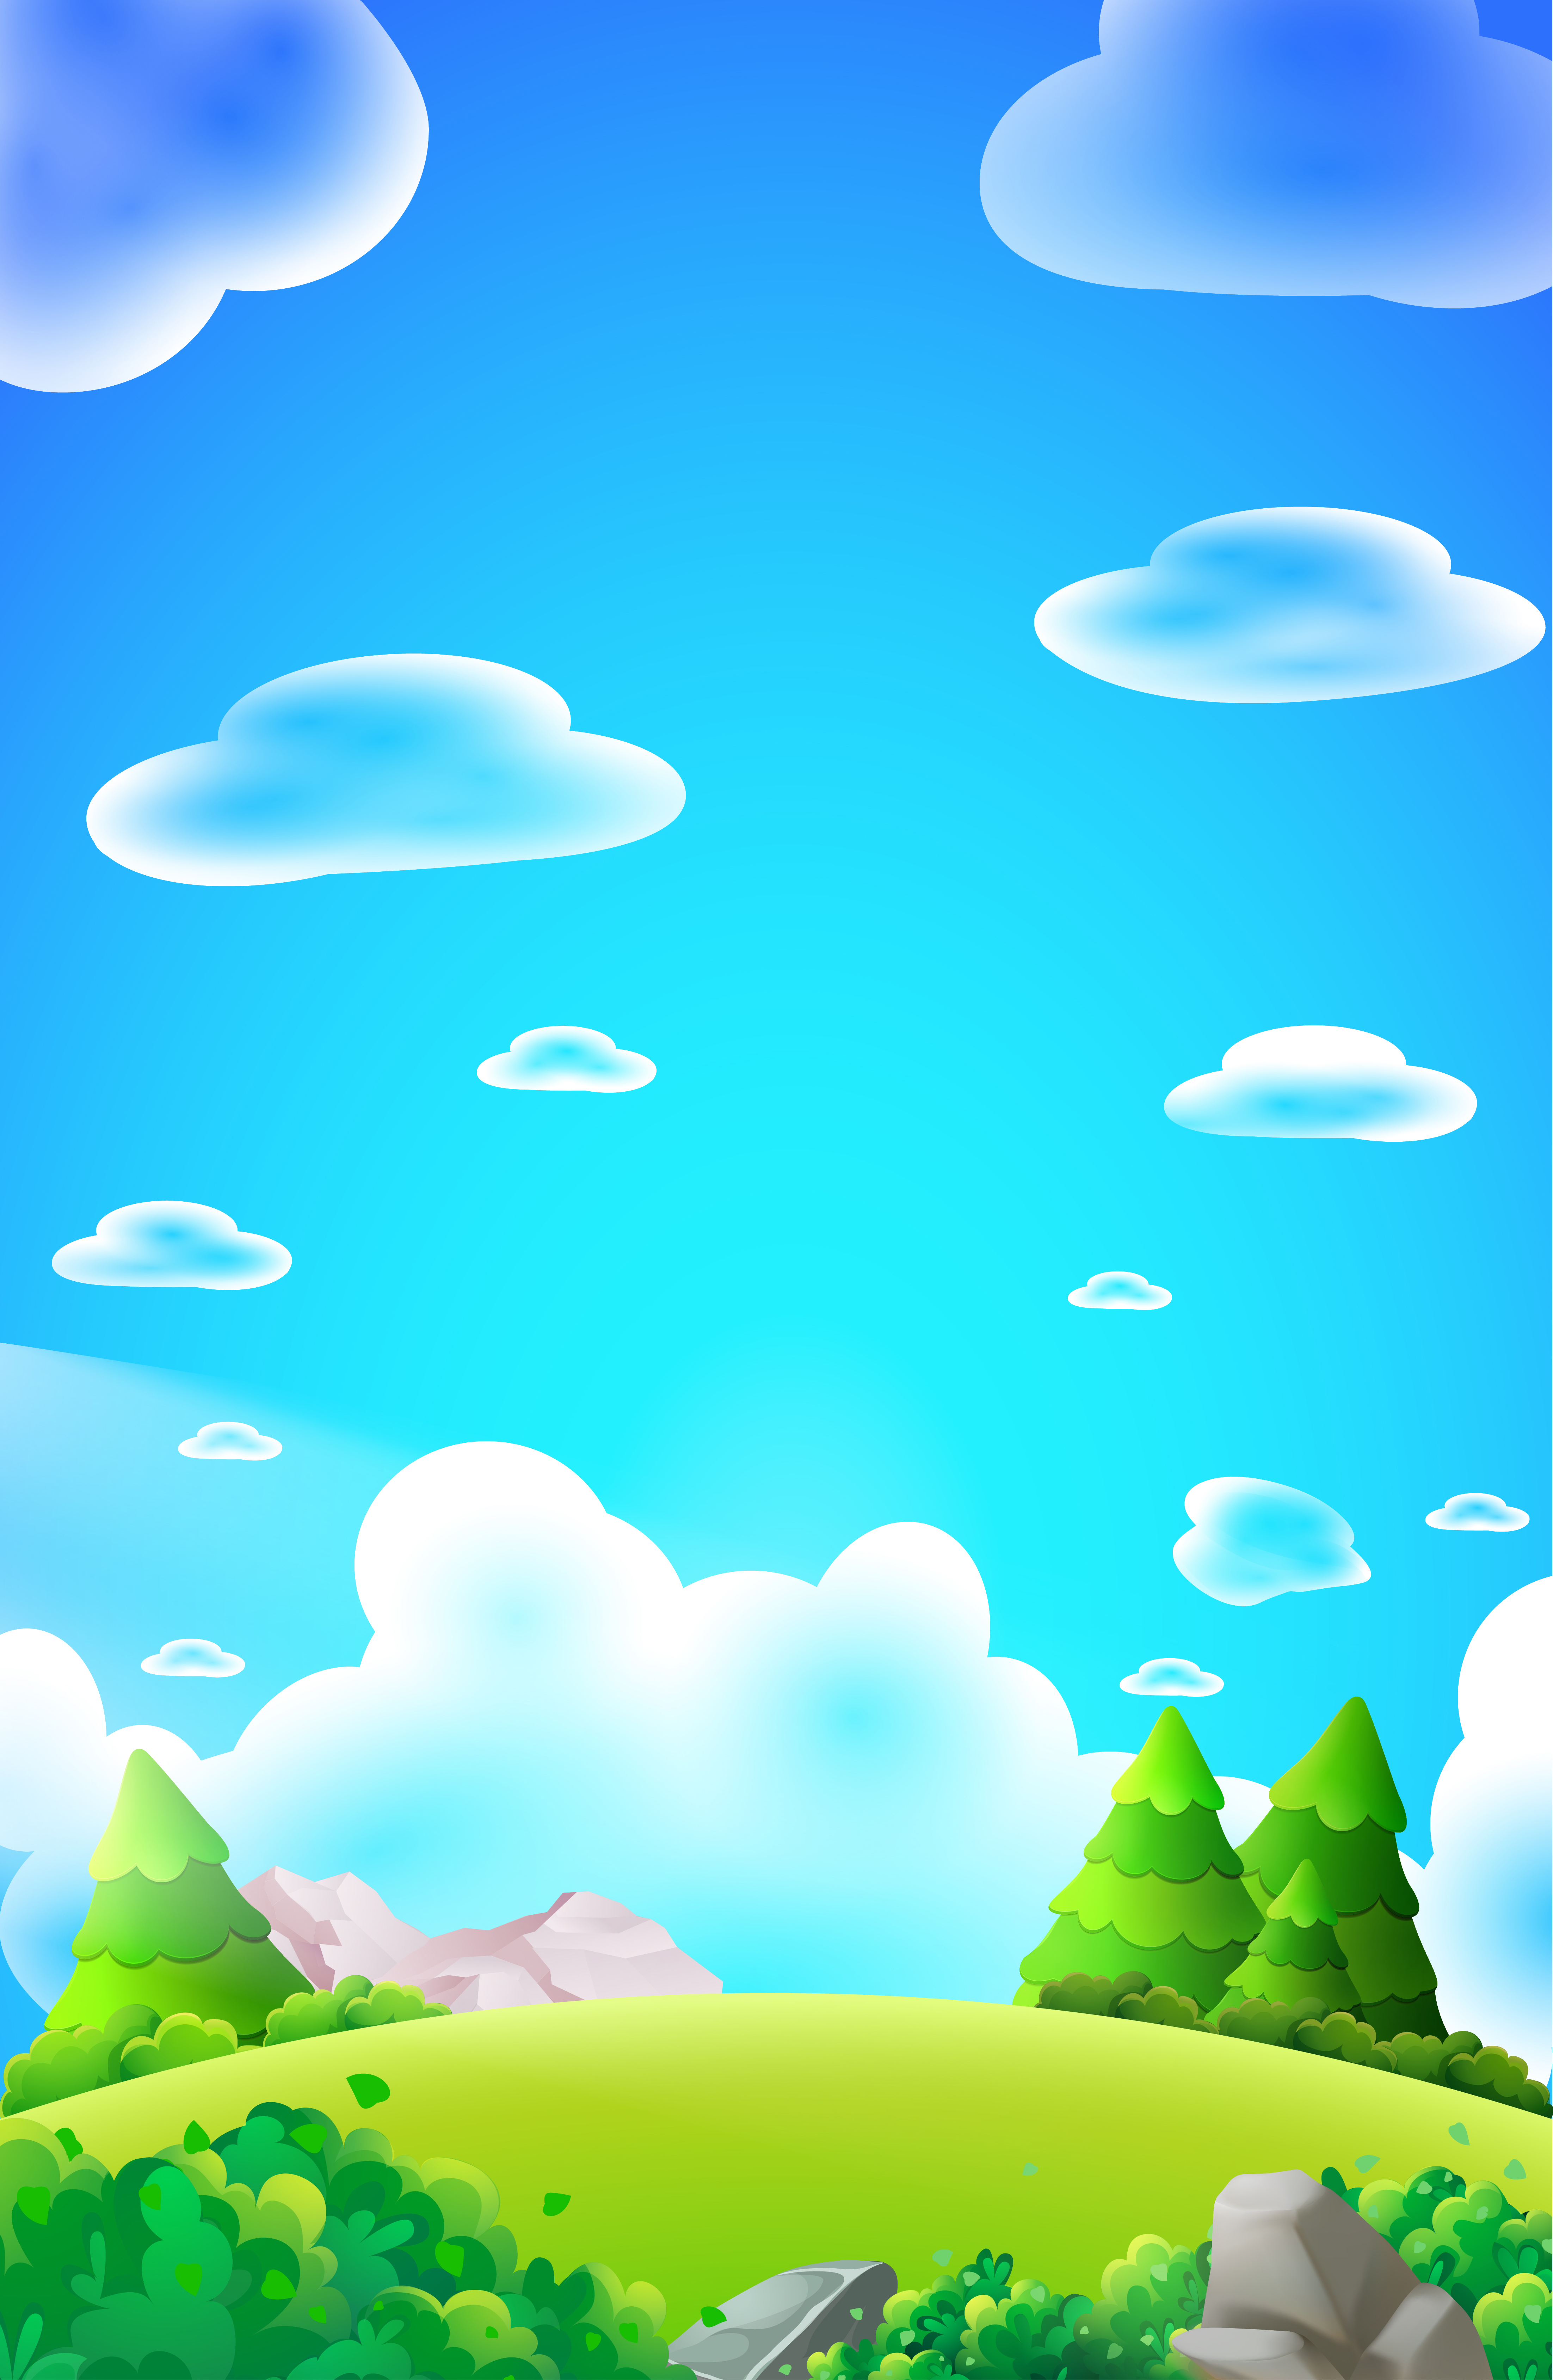 Cartoon forest hill portrait vector nature background ...